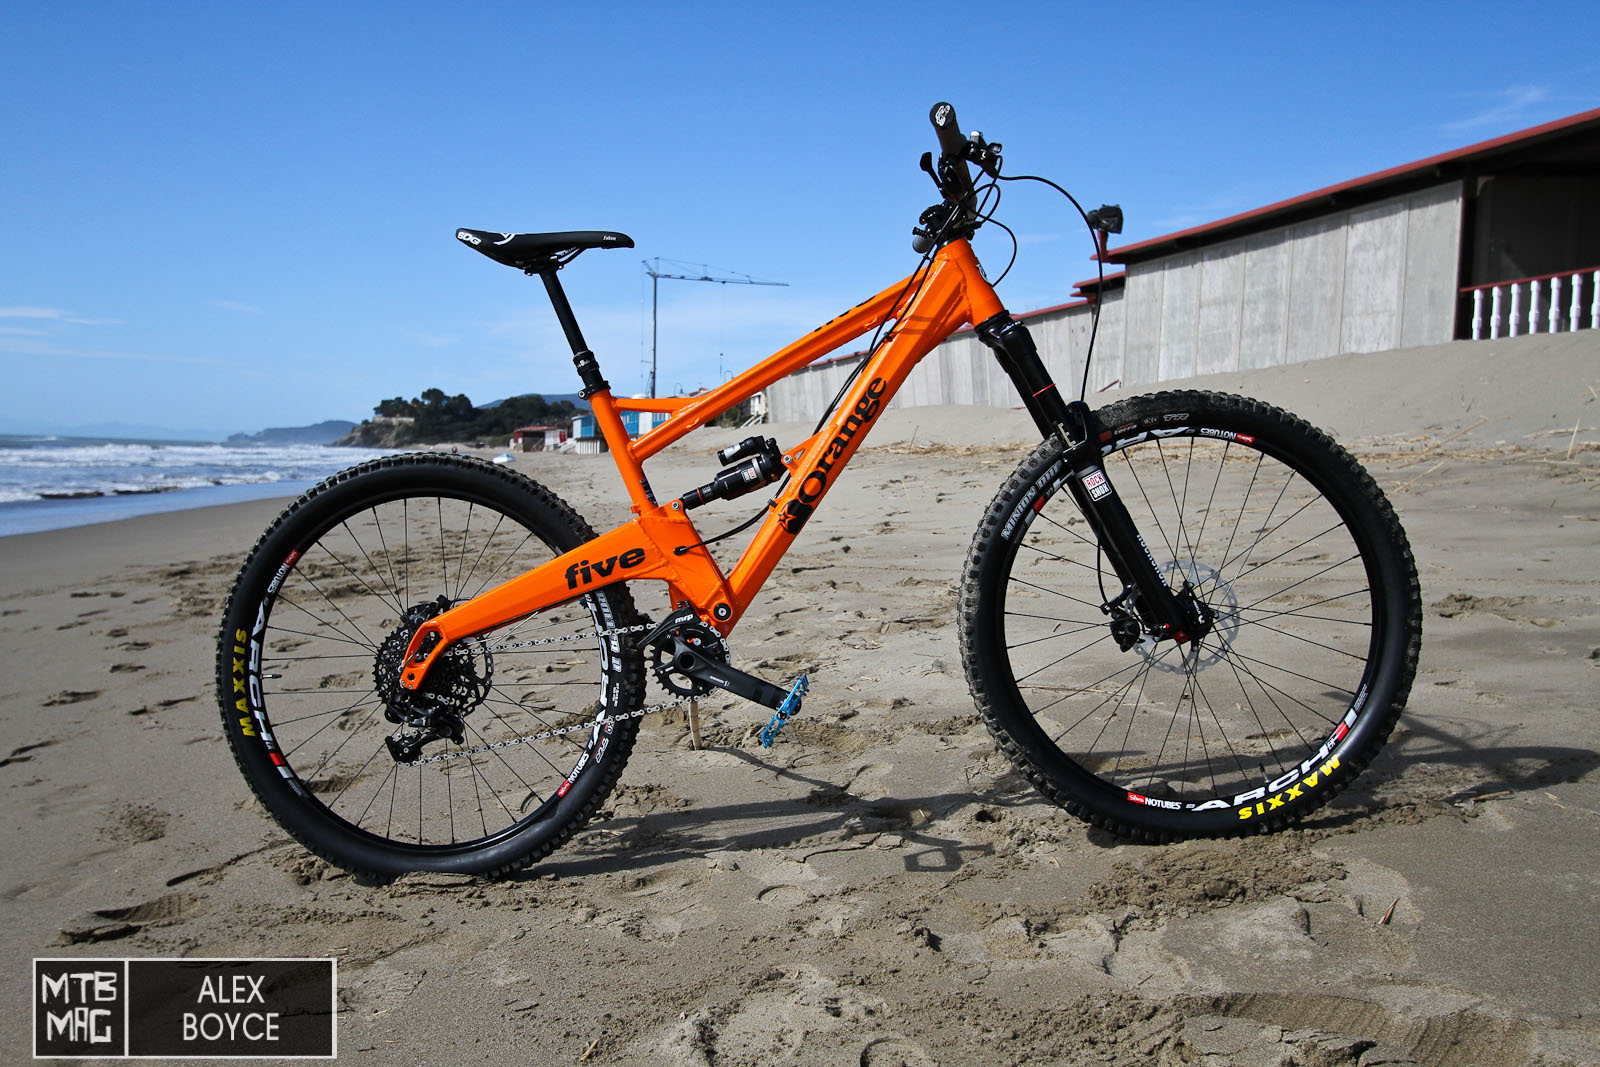 140mm of travel out back and Trail/Enduro geometry.